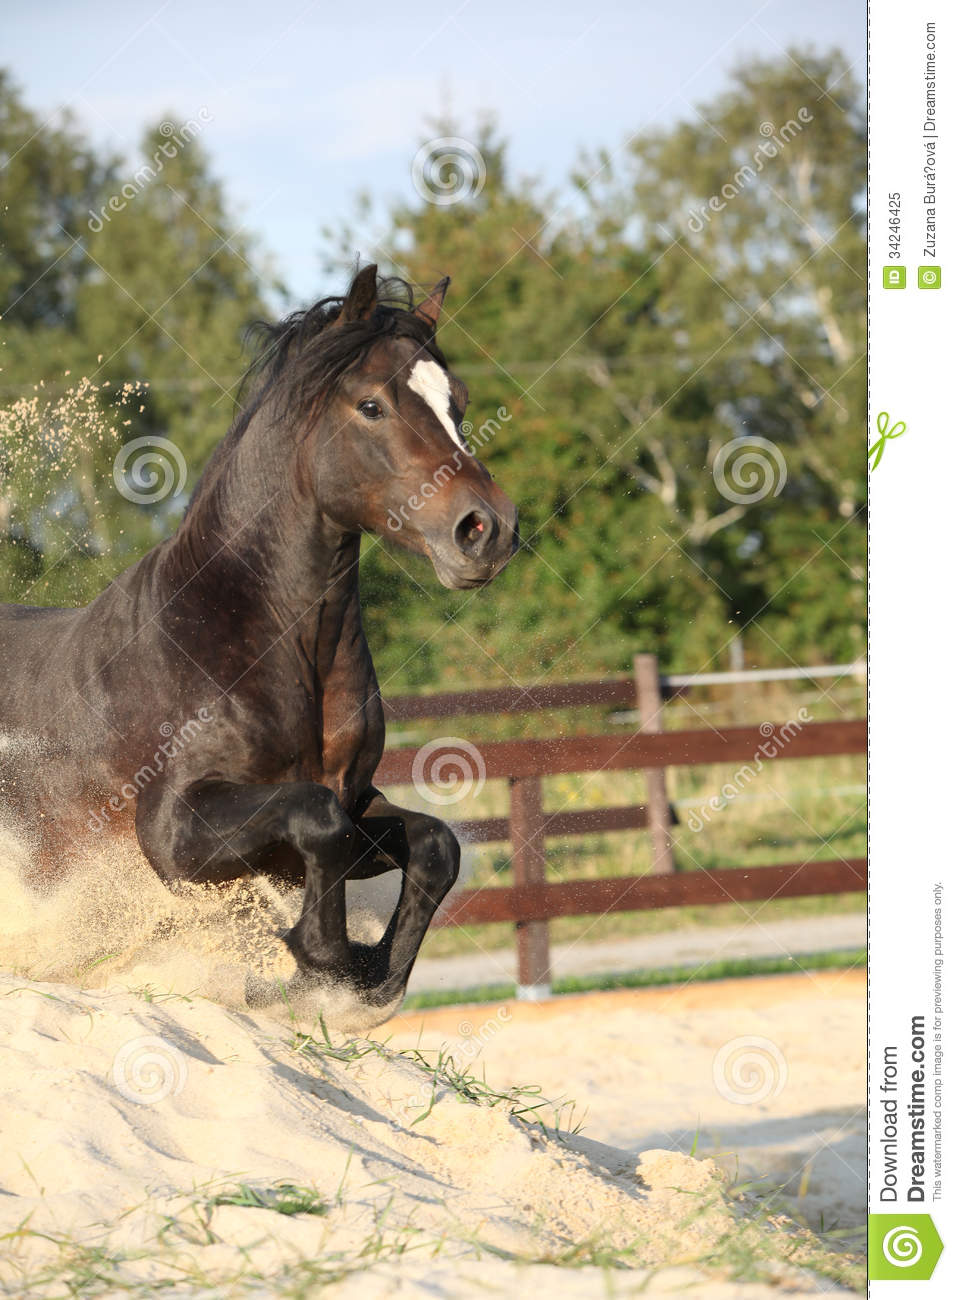 Gorgeous Brown Welsh Cob Jumping Stock Image Image Of Equestrian Horse 34246425